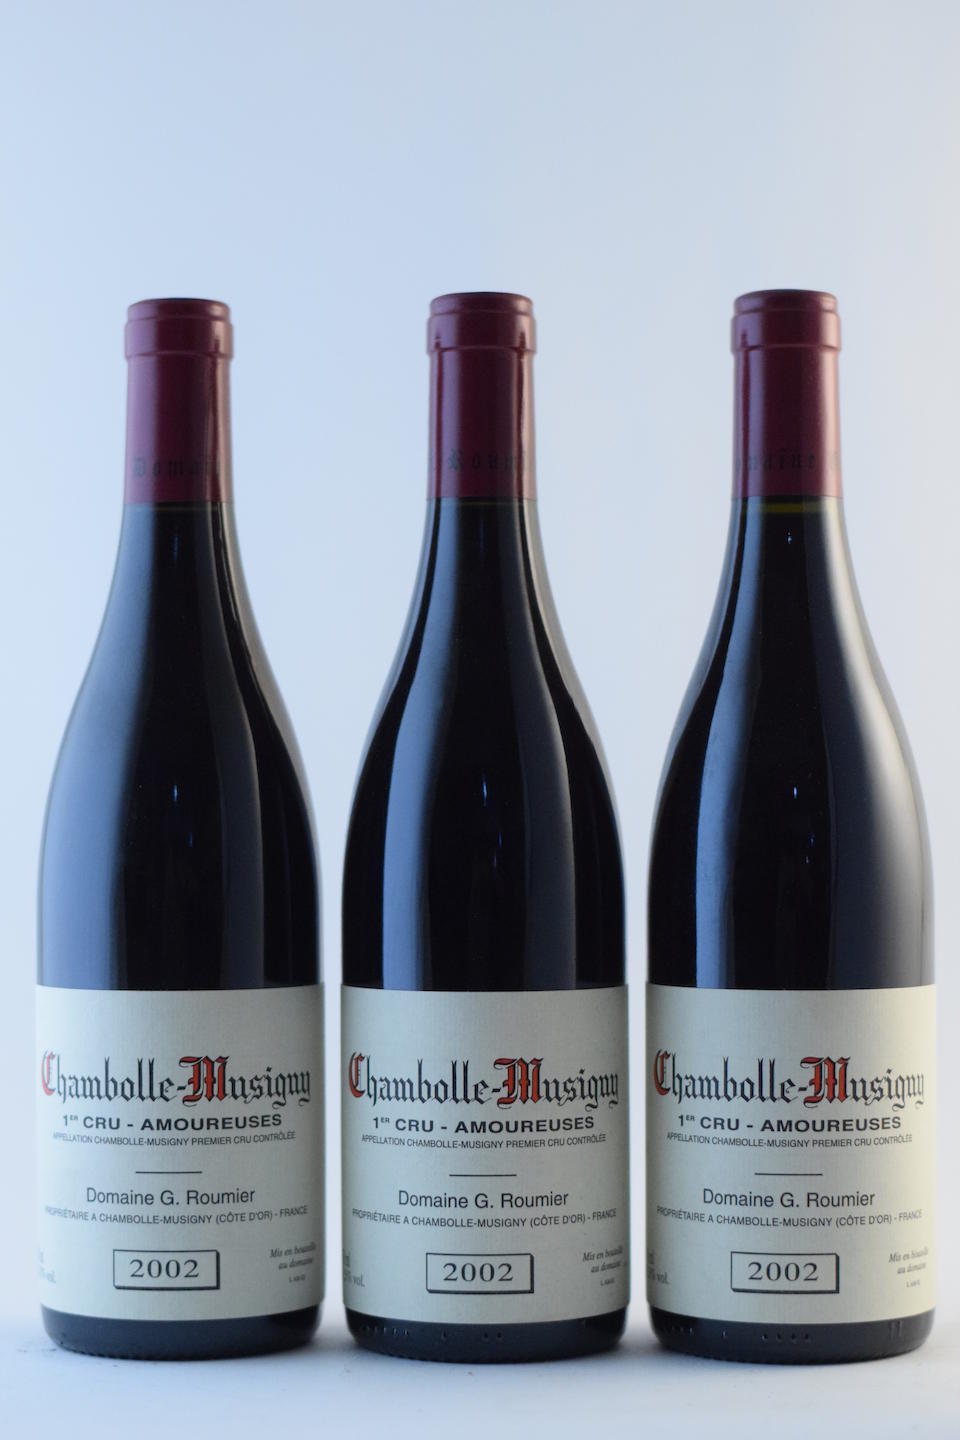 Chambolle-Musigny 1er Cru, Les Amoureuses 2002, Domaine G. Roumier (3)